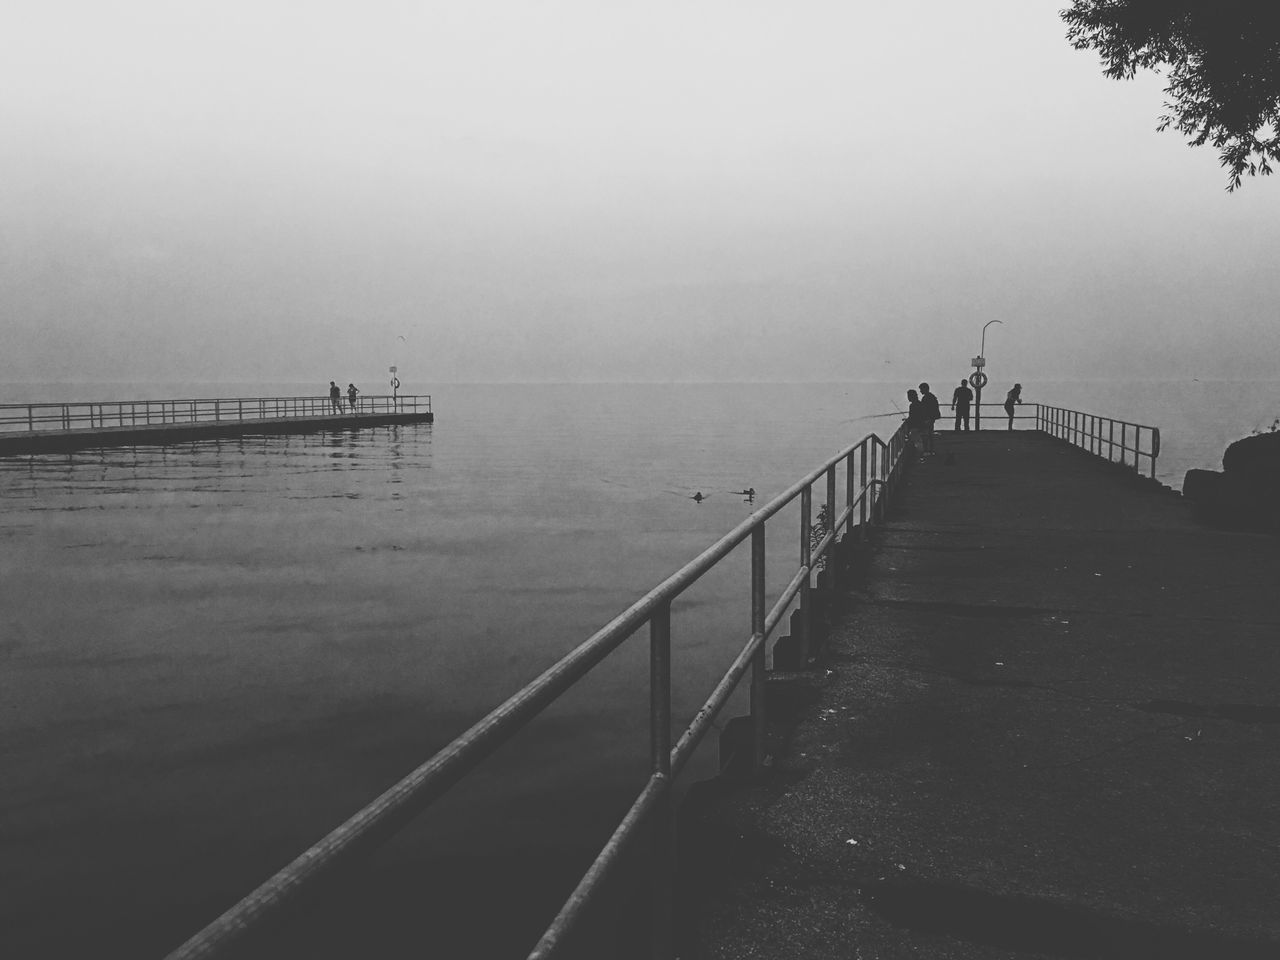 water, sea, railing, pier, nature, tranquil scene, tranquility, fog, outdoors, beauty in nature, day, scenics, horizon over water, sky, jetty, silhouette, men, real people, people